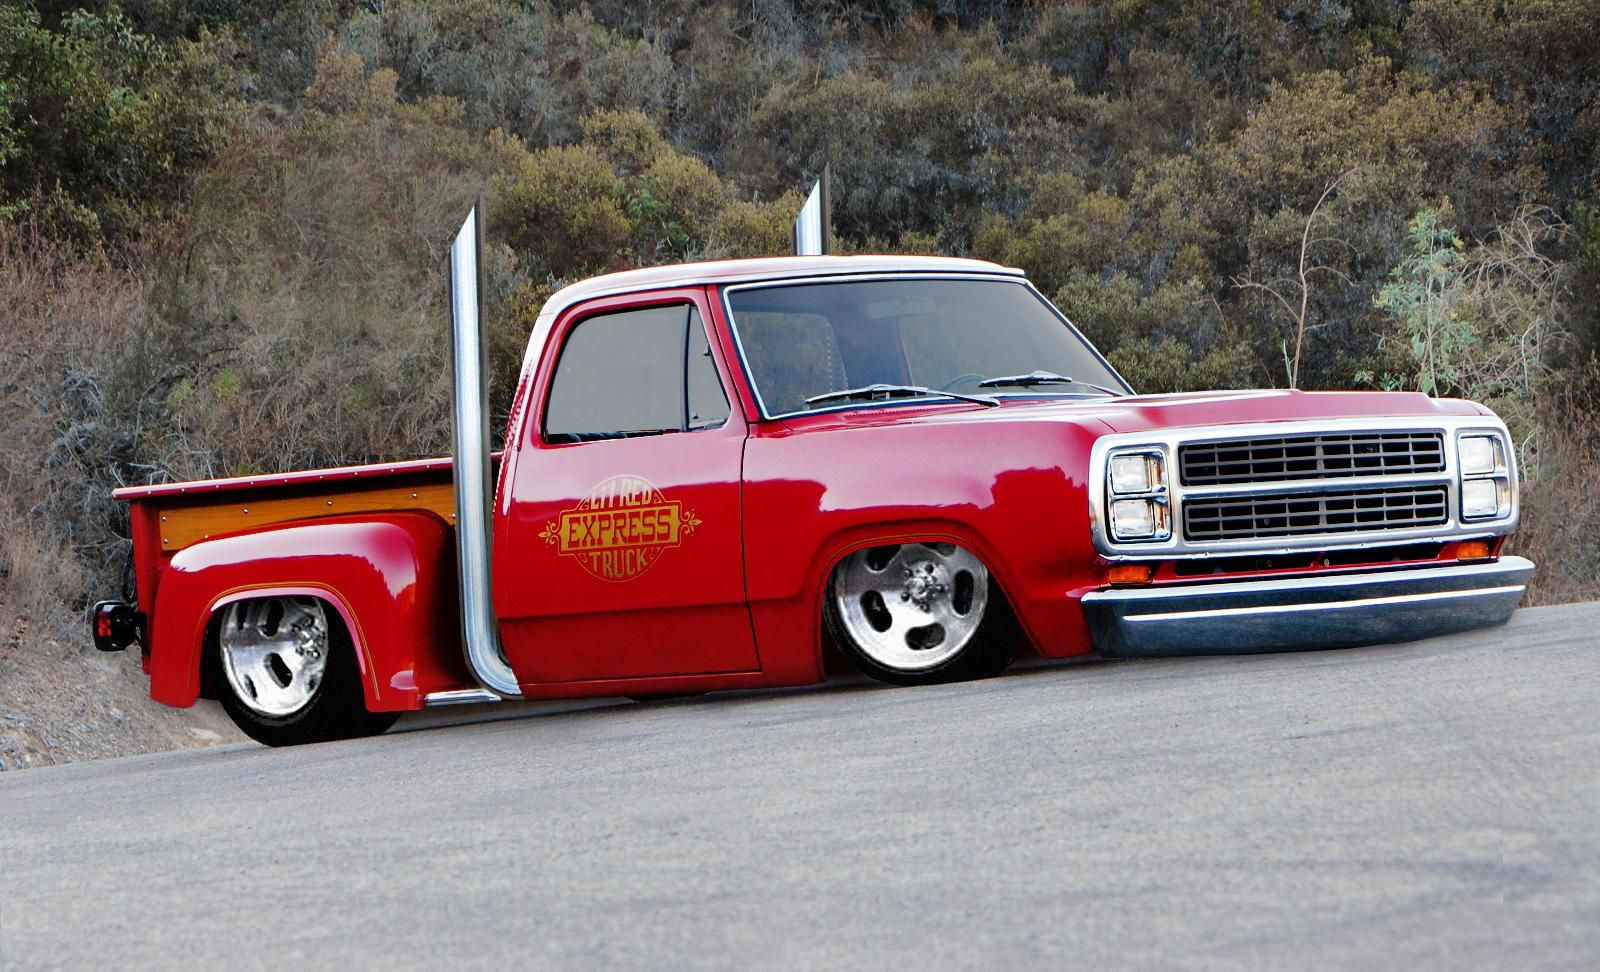 ❦ 79' Dodge Little Red Express - shaved, channeled & bagged (shopped) by rubrduk